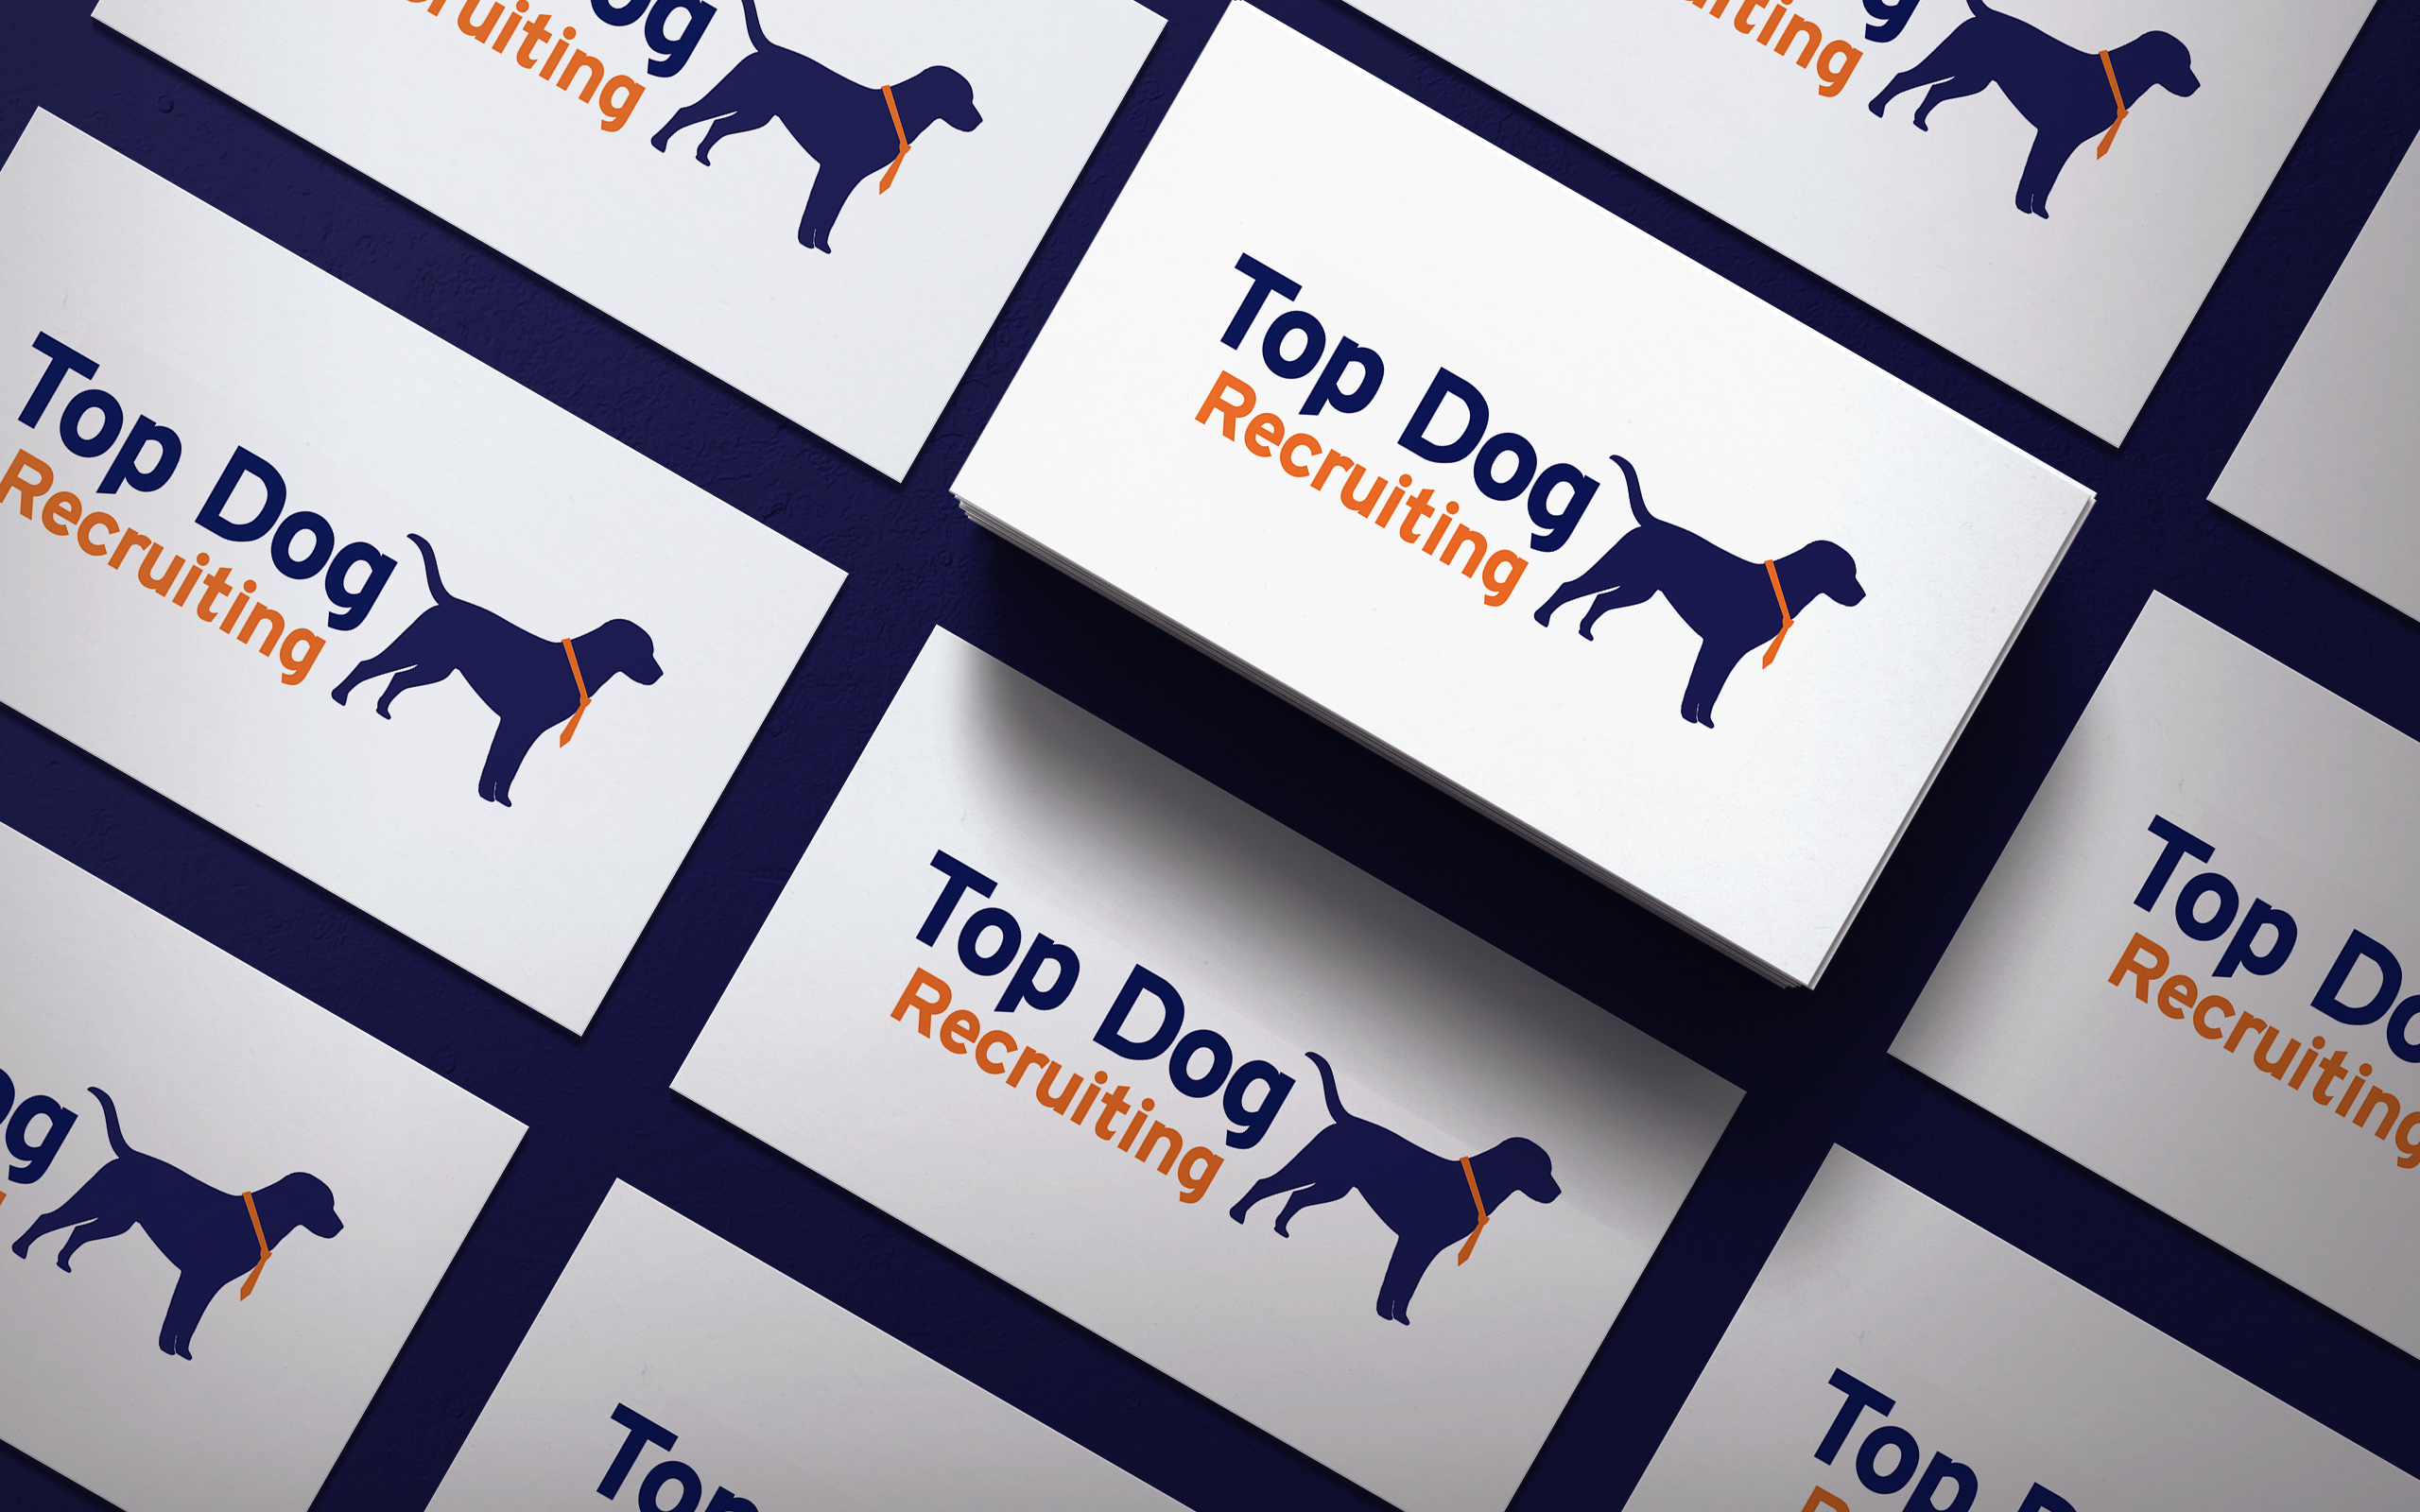 Top Dog Recruiting, LLC.